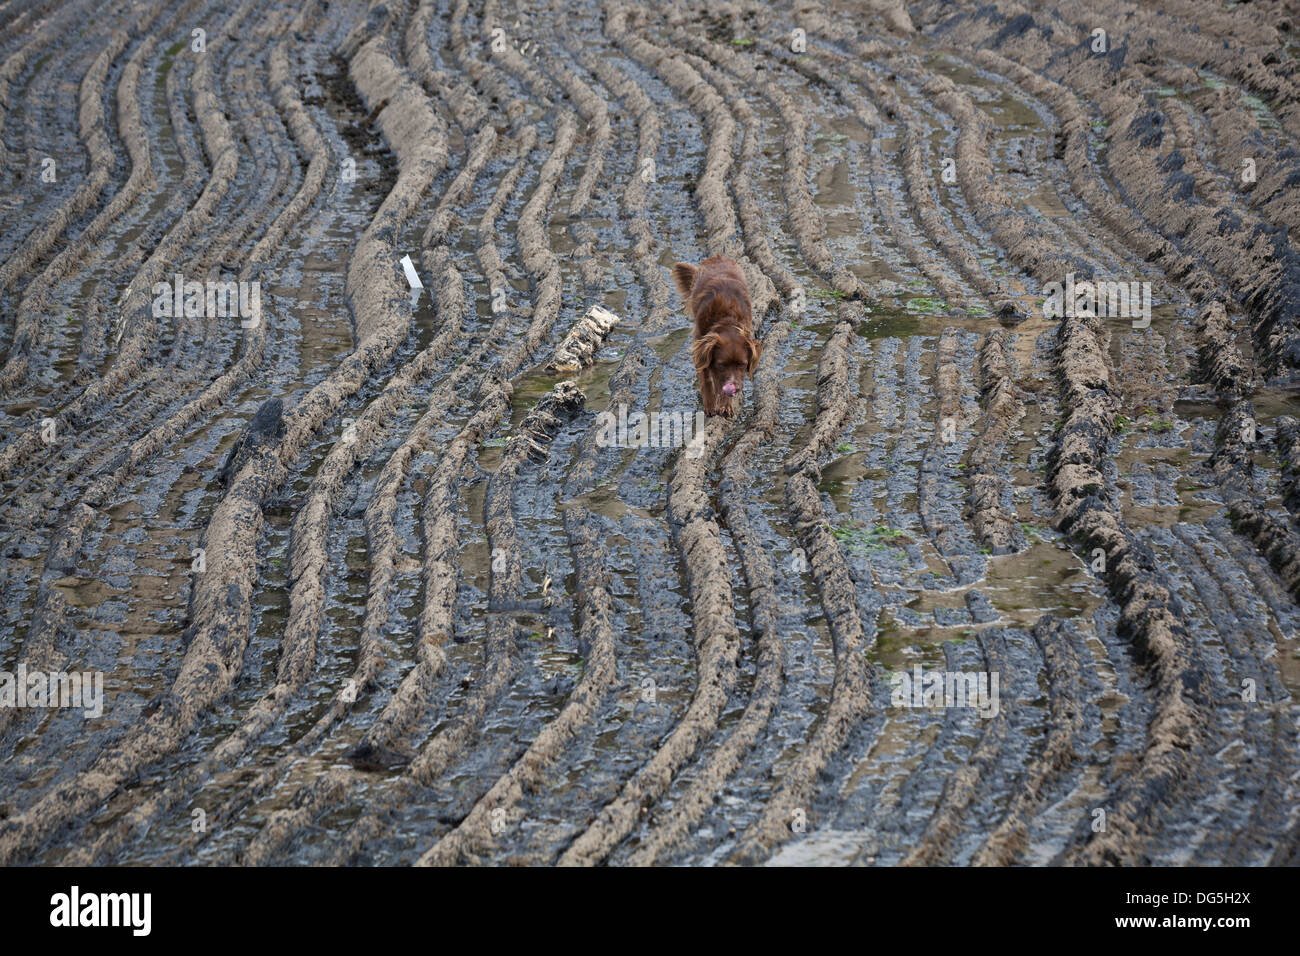 a pet dog walks long rock patterns on the coast in portugal - Stock Image